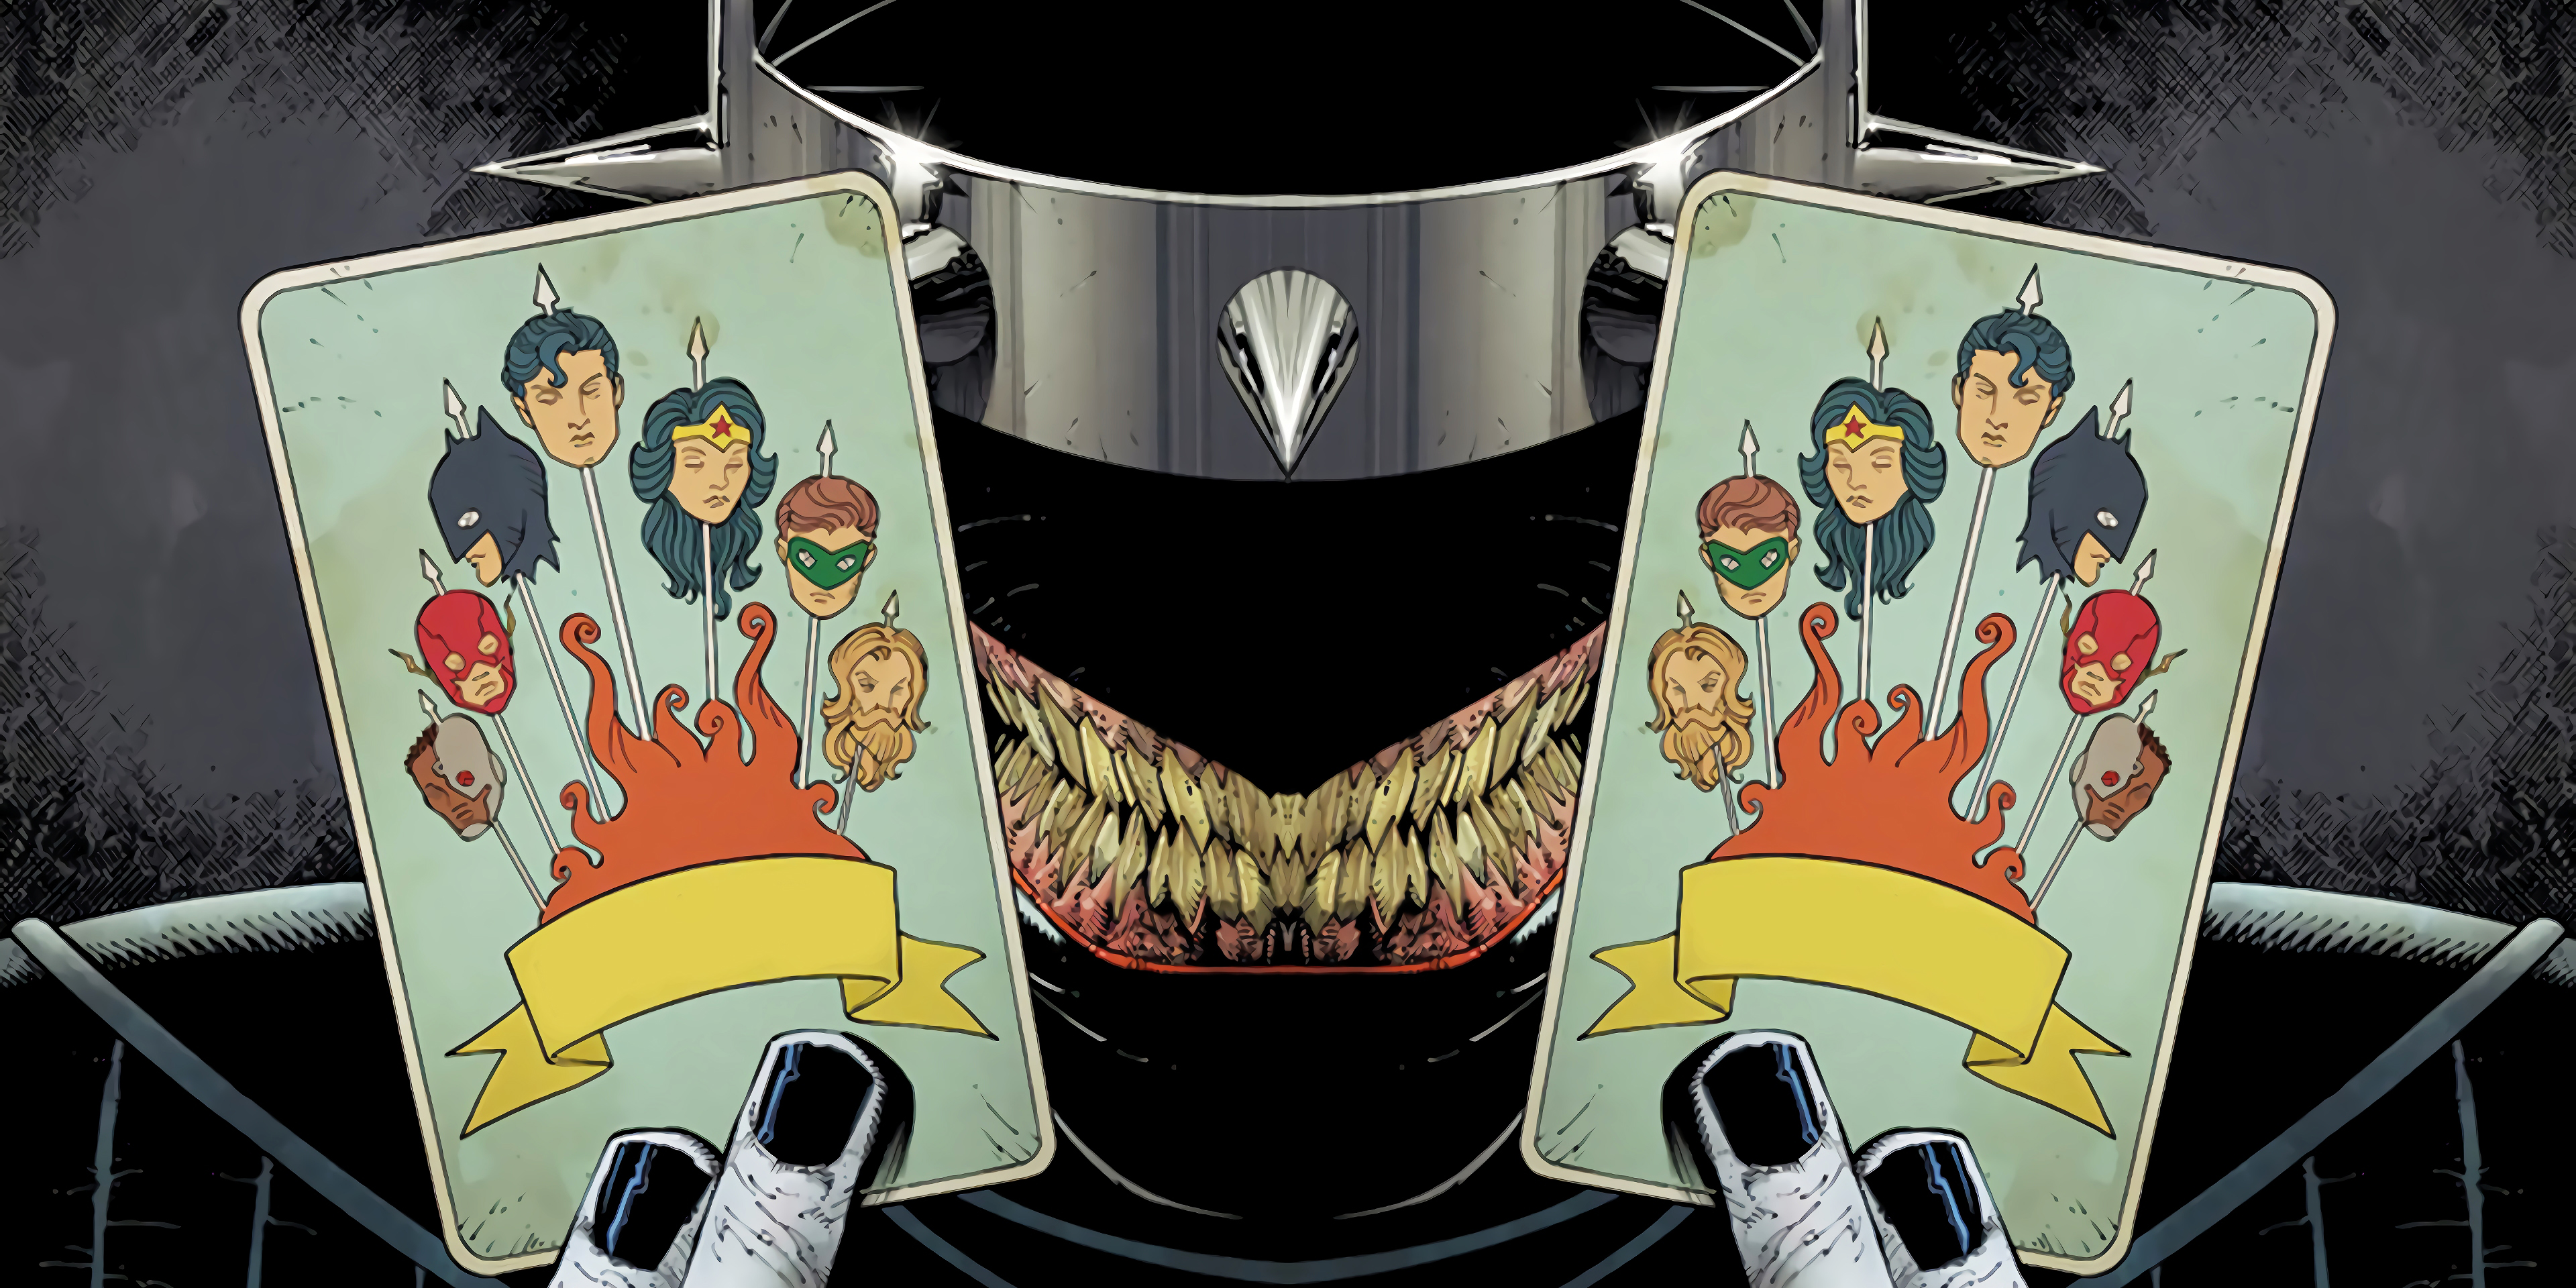 Greg Capullo Crafts a Chilling Cover for The Batman Who Laughs #1